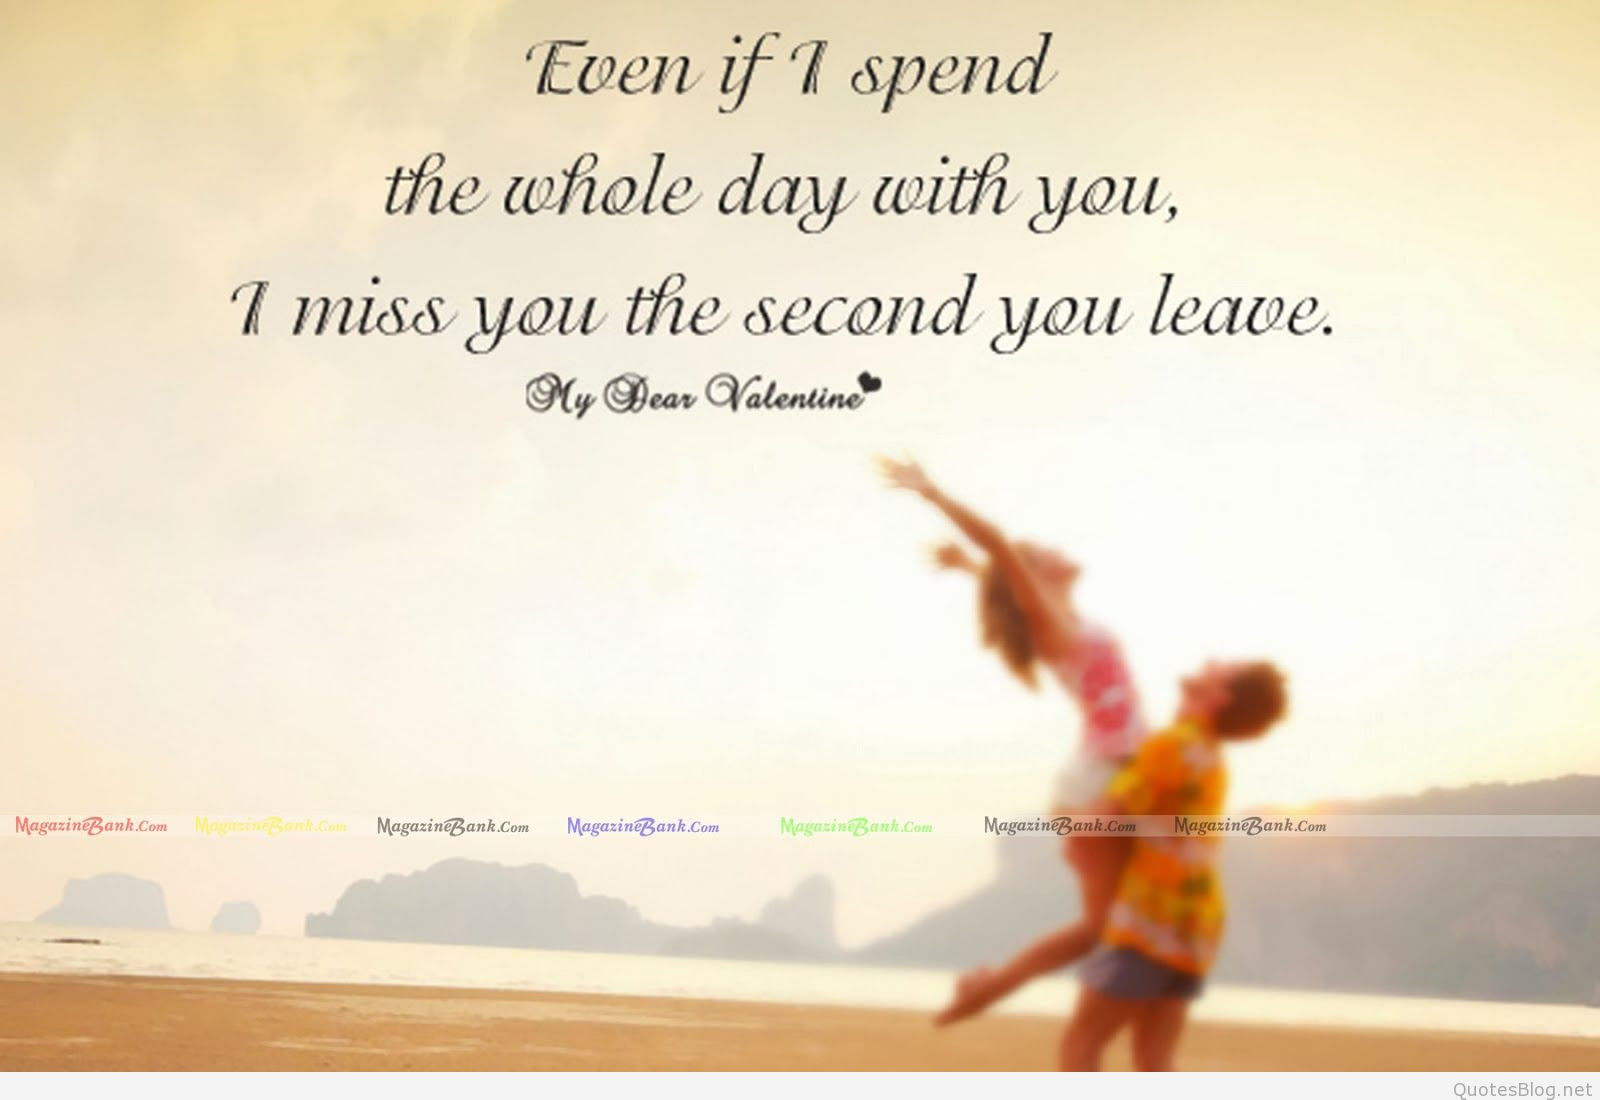 Cute Romantic Quotes For Her  Cute love quotes images pics and sayings